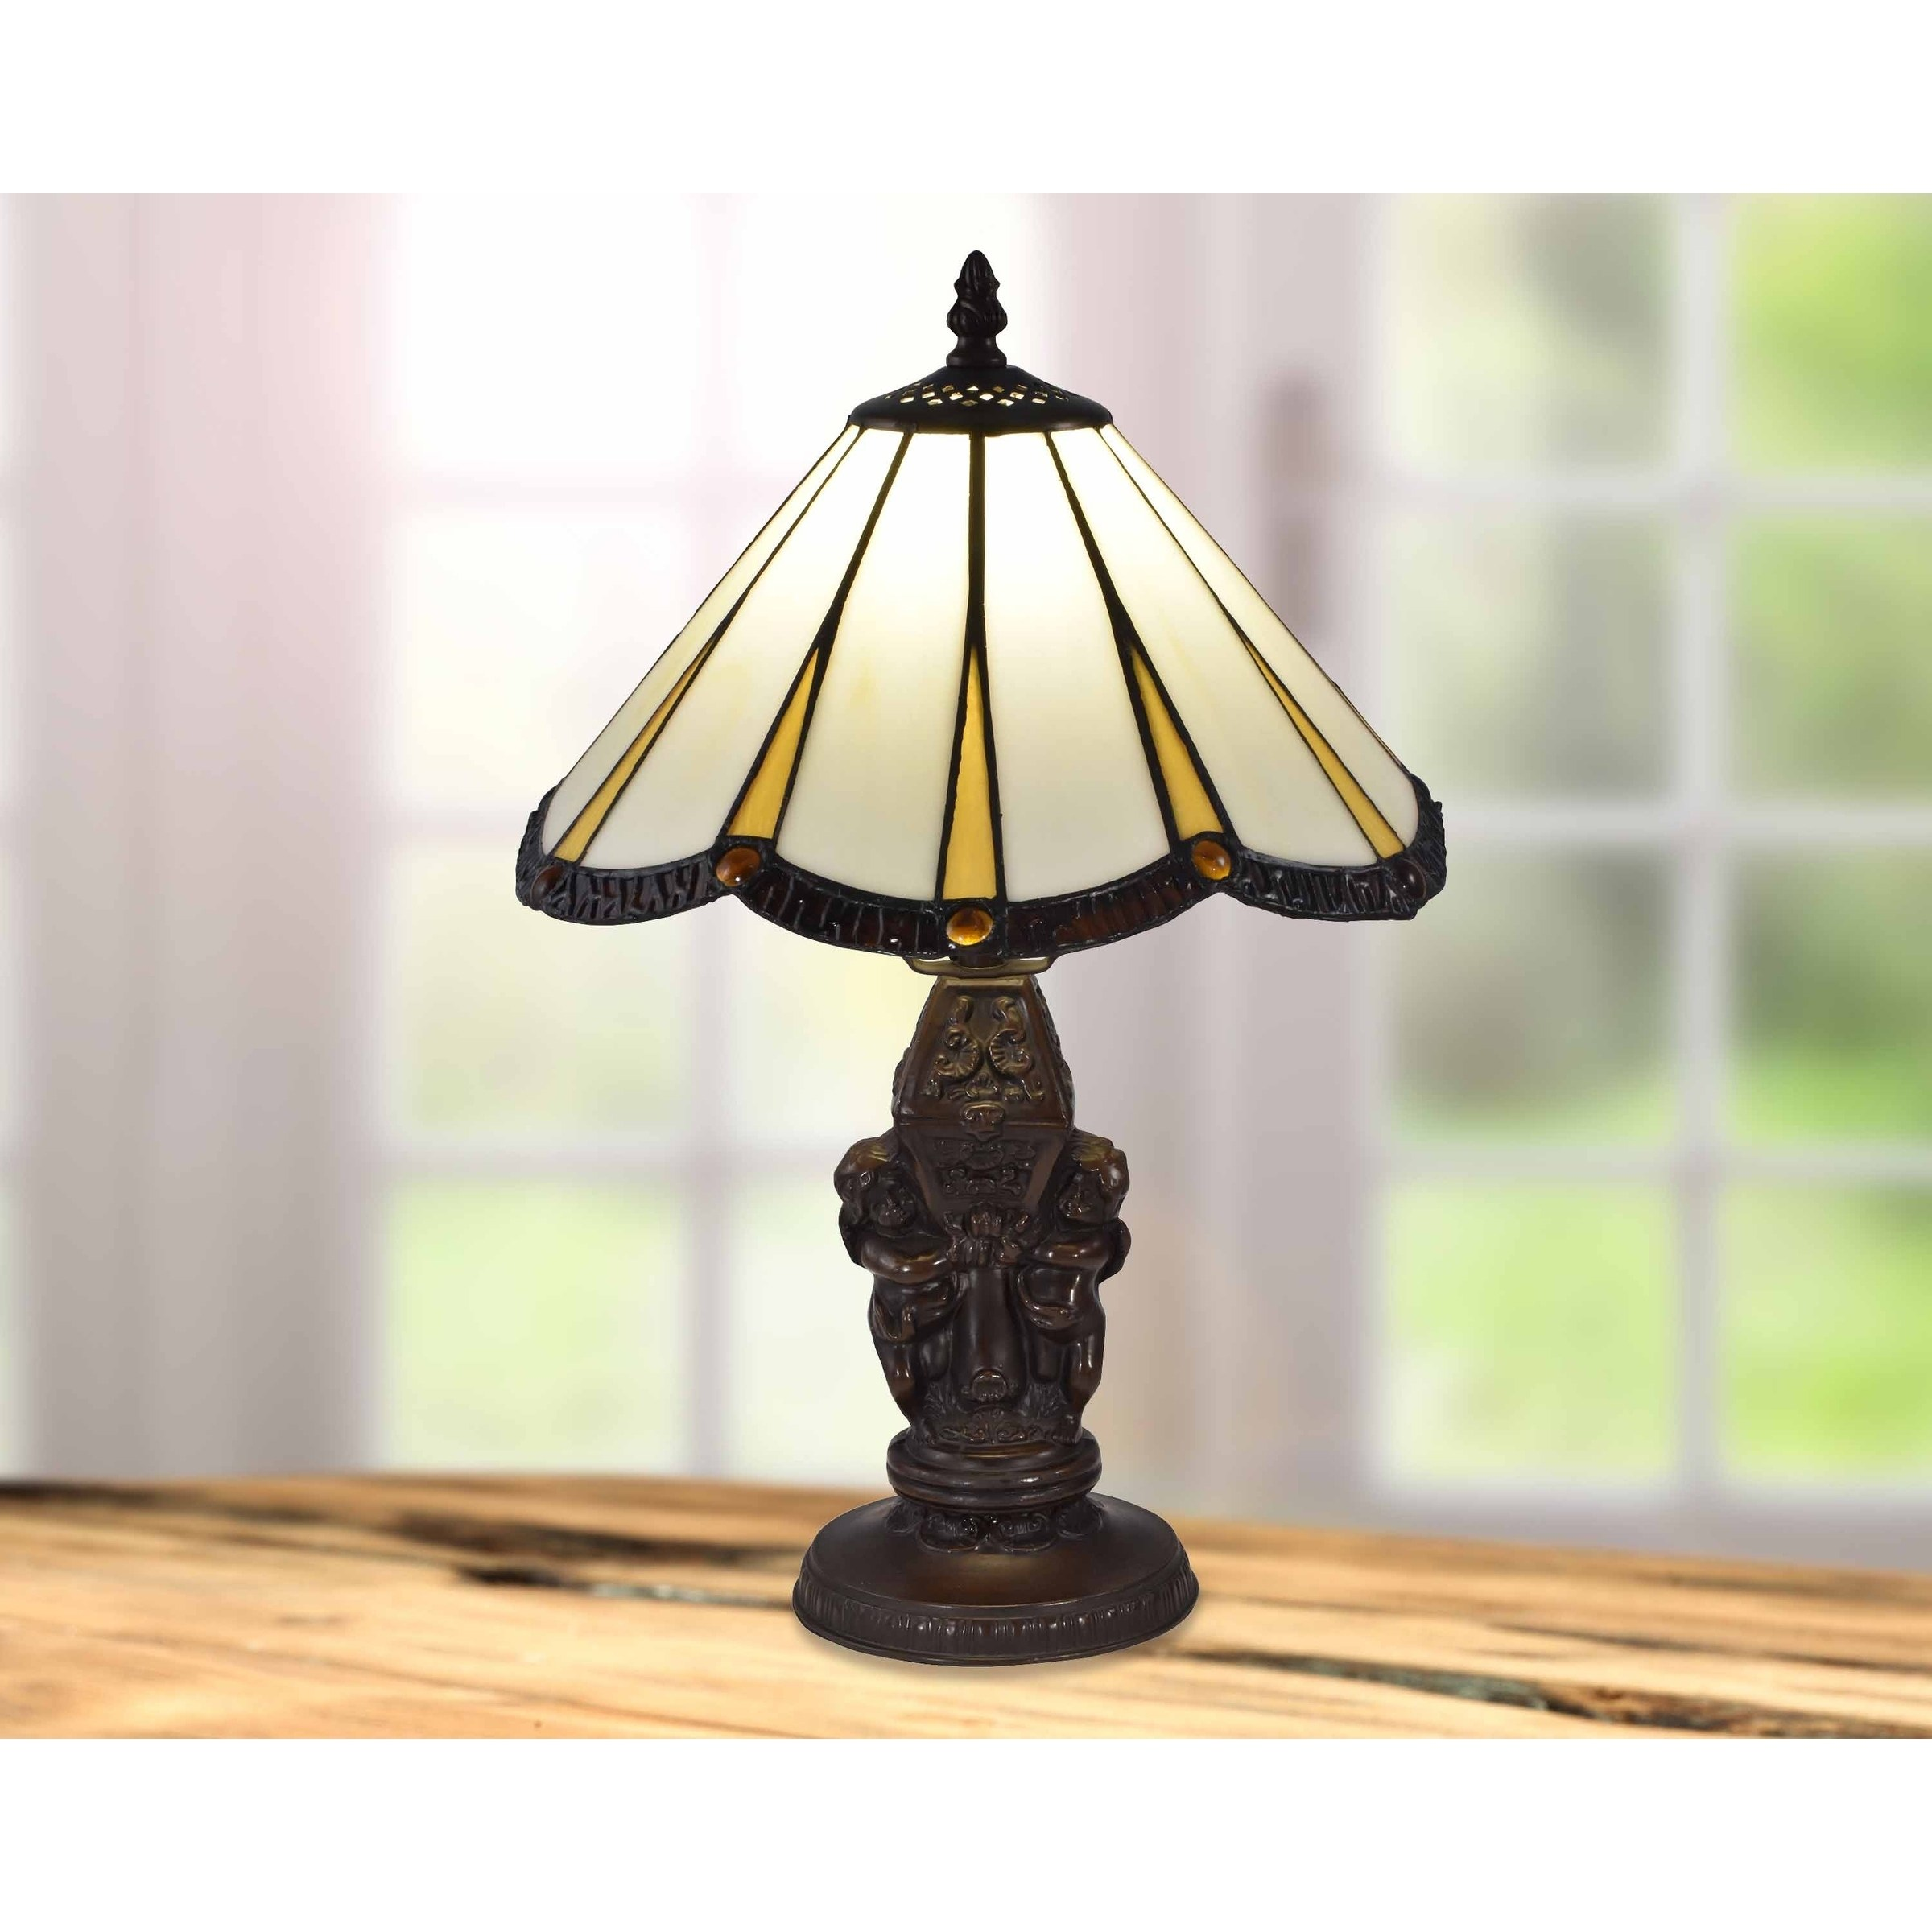 springdale rosita tiffany accent table lamp lamps free shipping today distressed dining room furniture console round side industrial with drawer cherry end tables queen anne